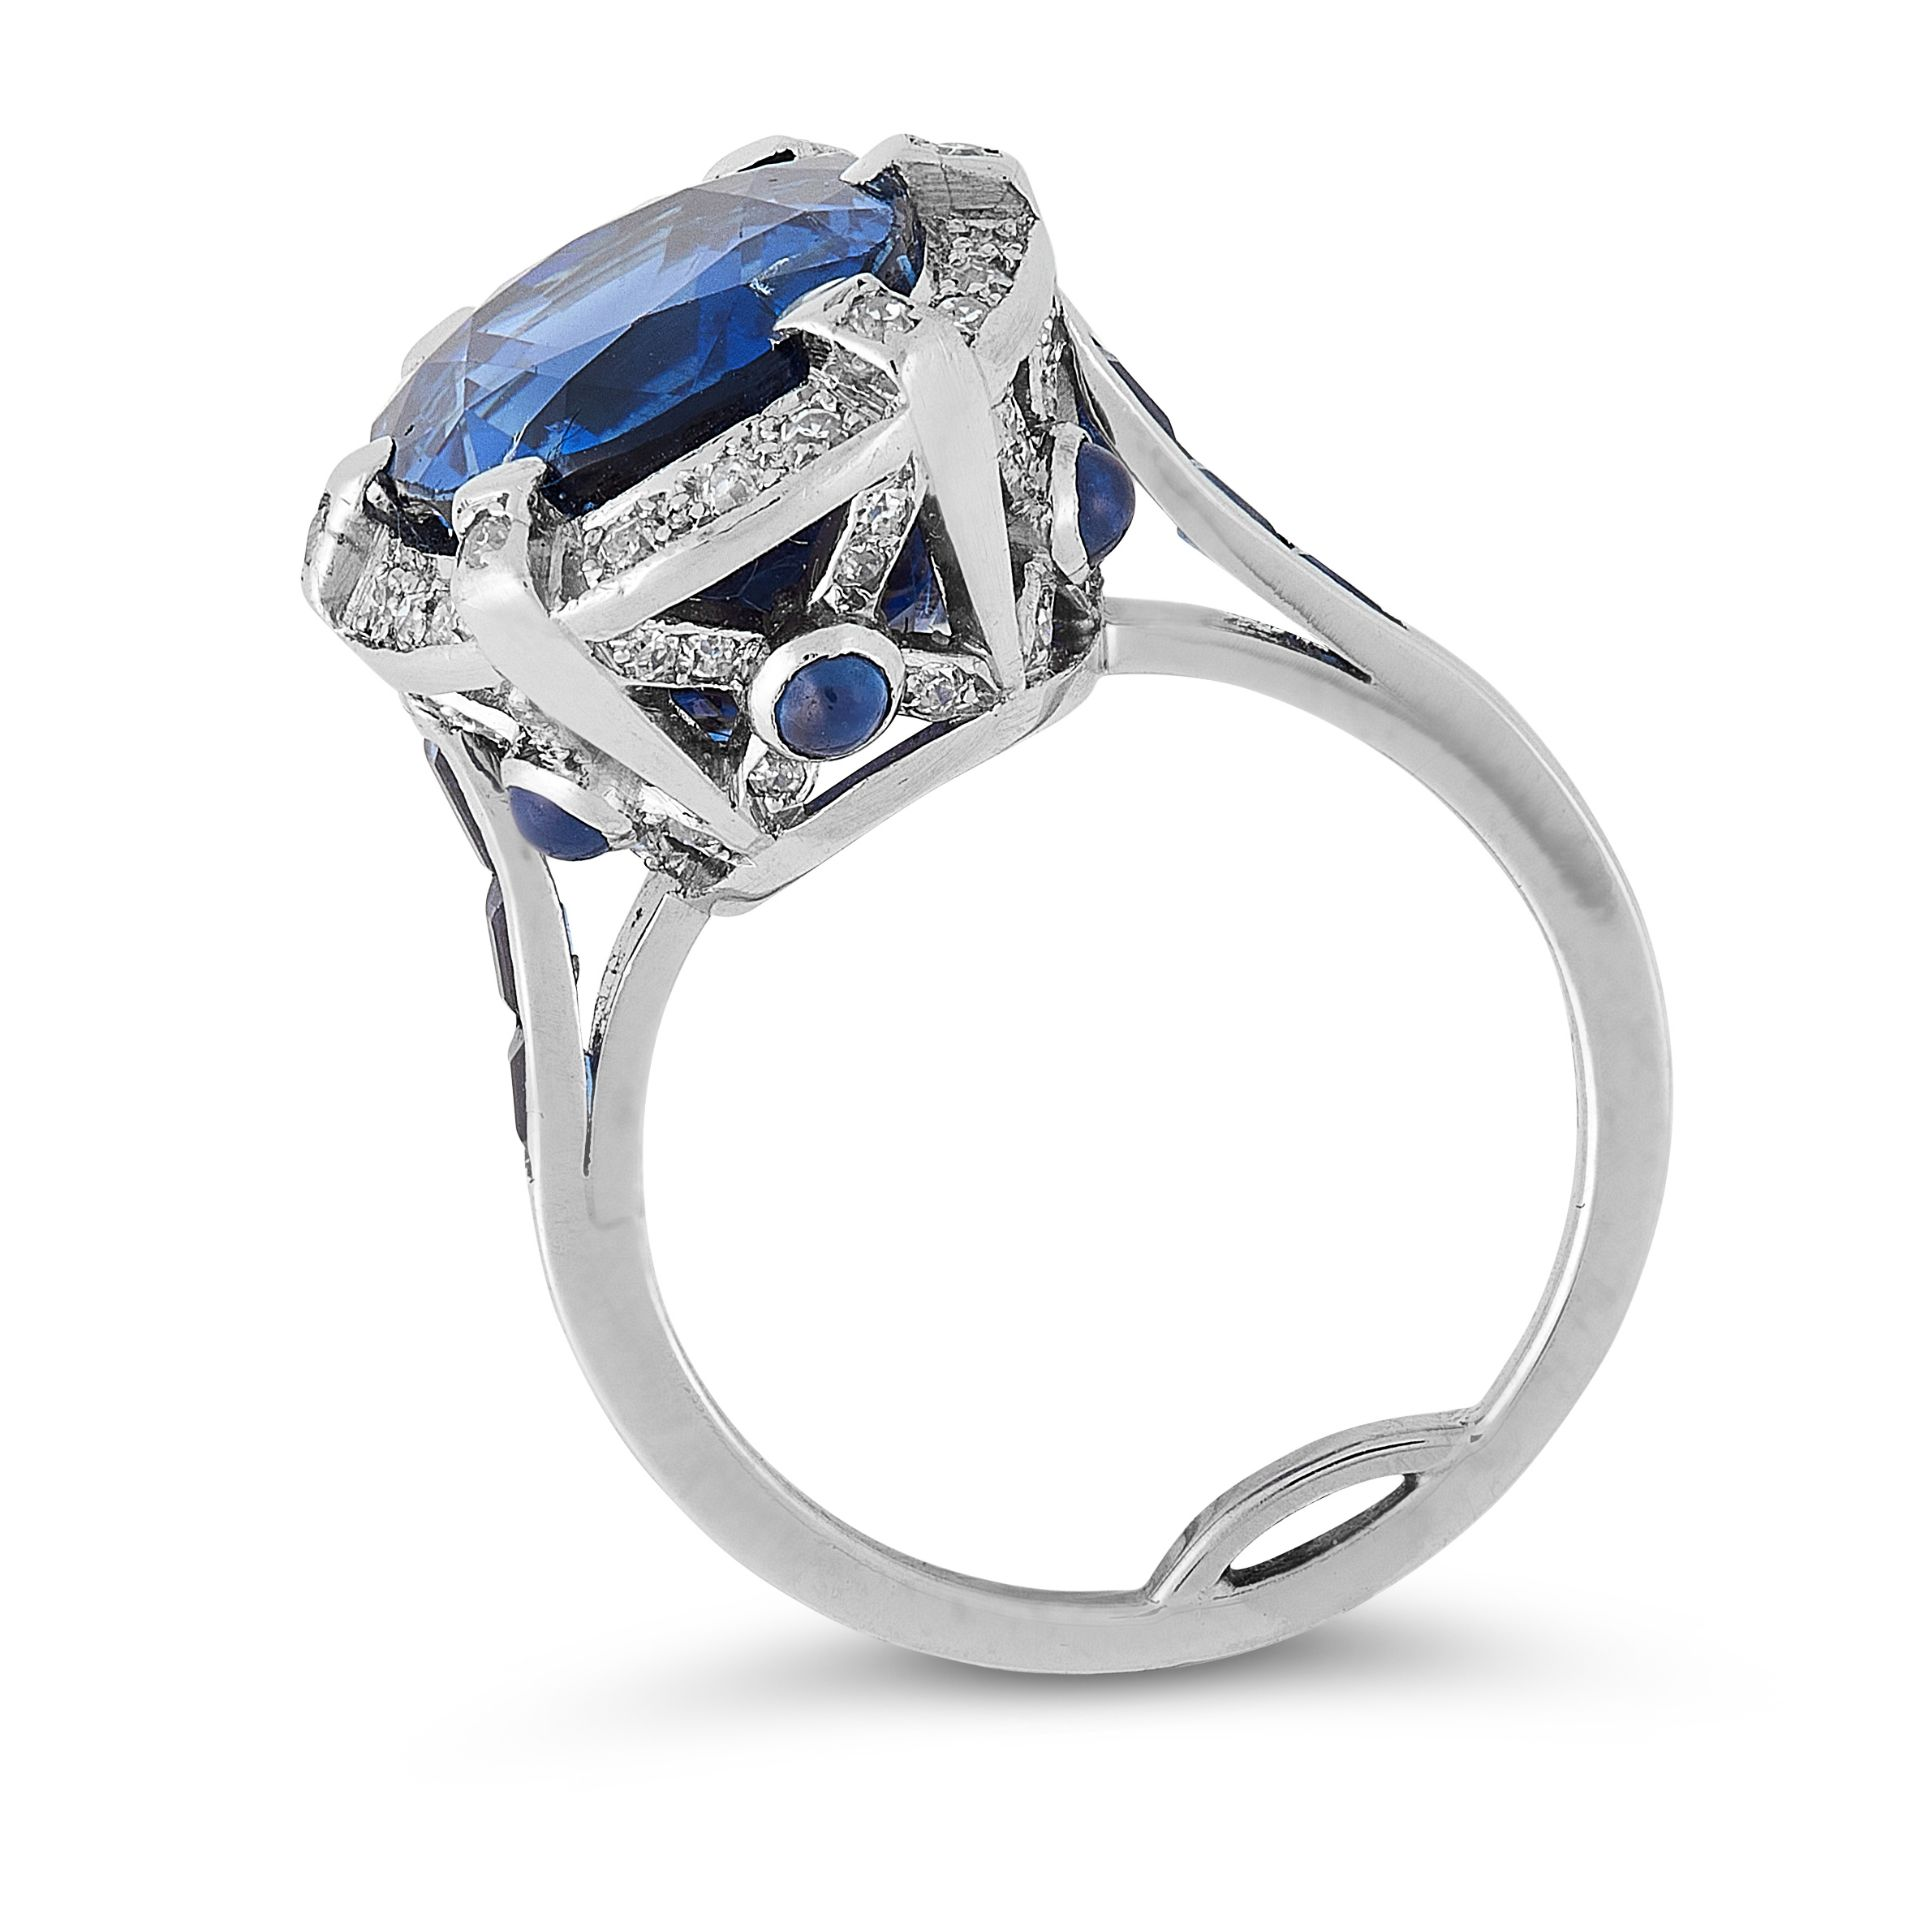 Los 10 - A BURMA NO HEAT SAPPHIRE AND DIAMOND RING in platinum, set with an oval cushion cut sapphire of